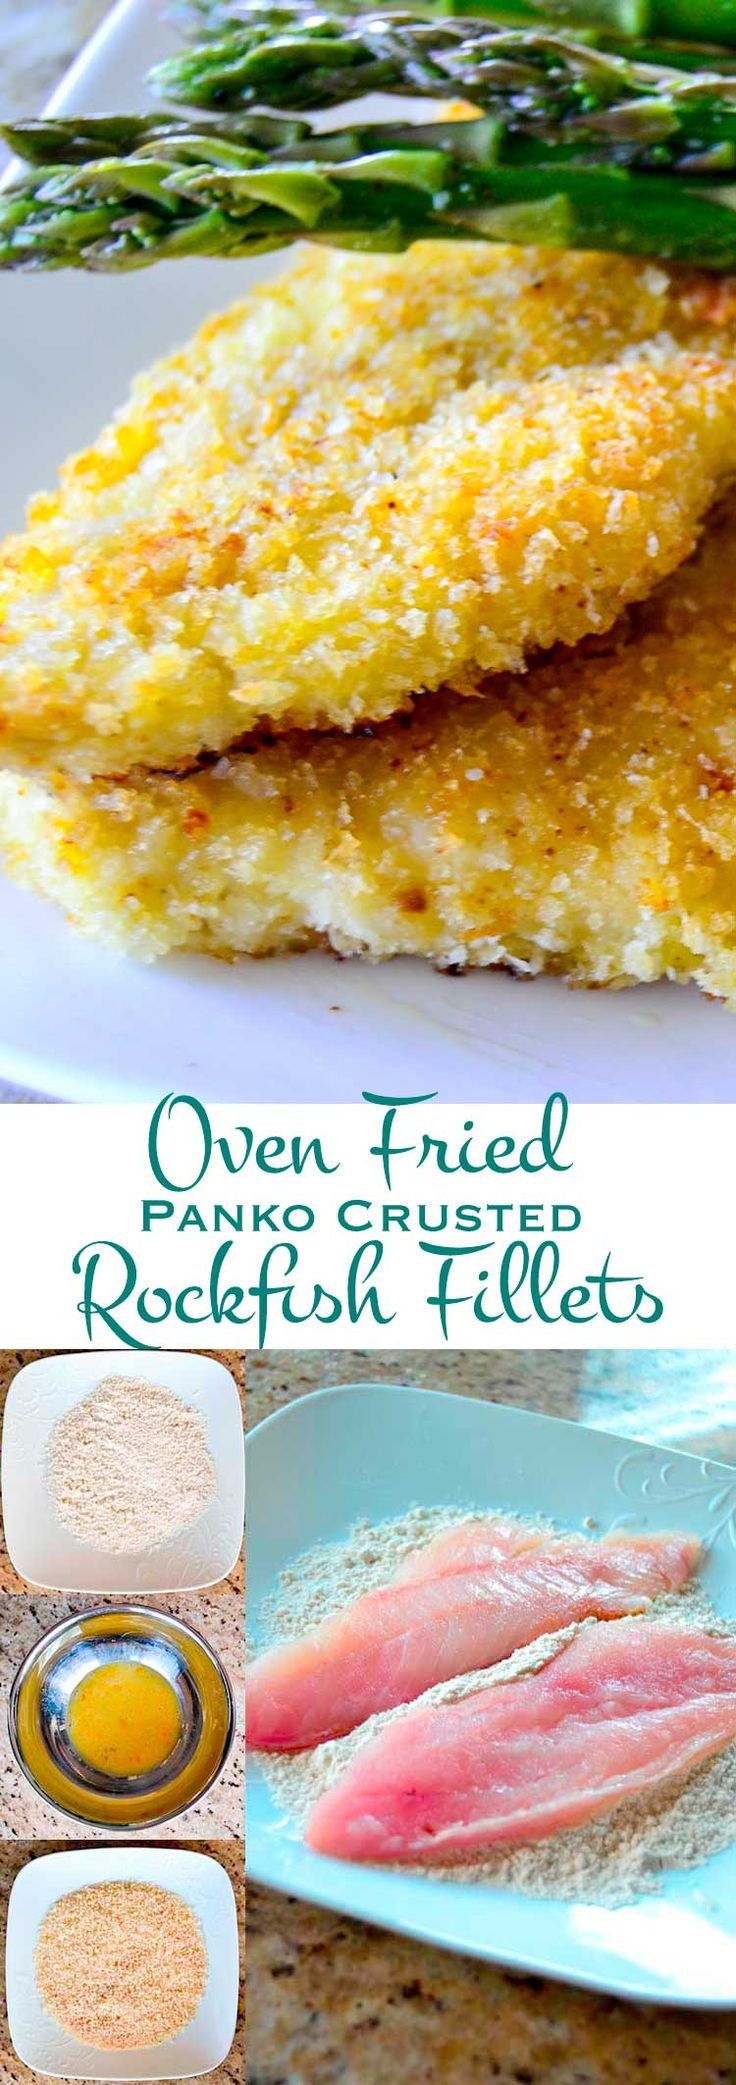 Oven Fried Panko Crusted Rockfish Fillets